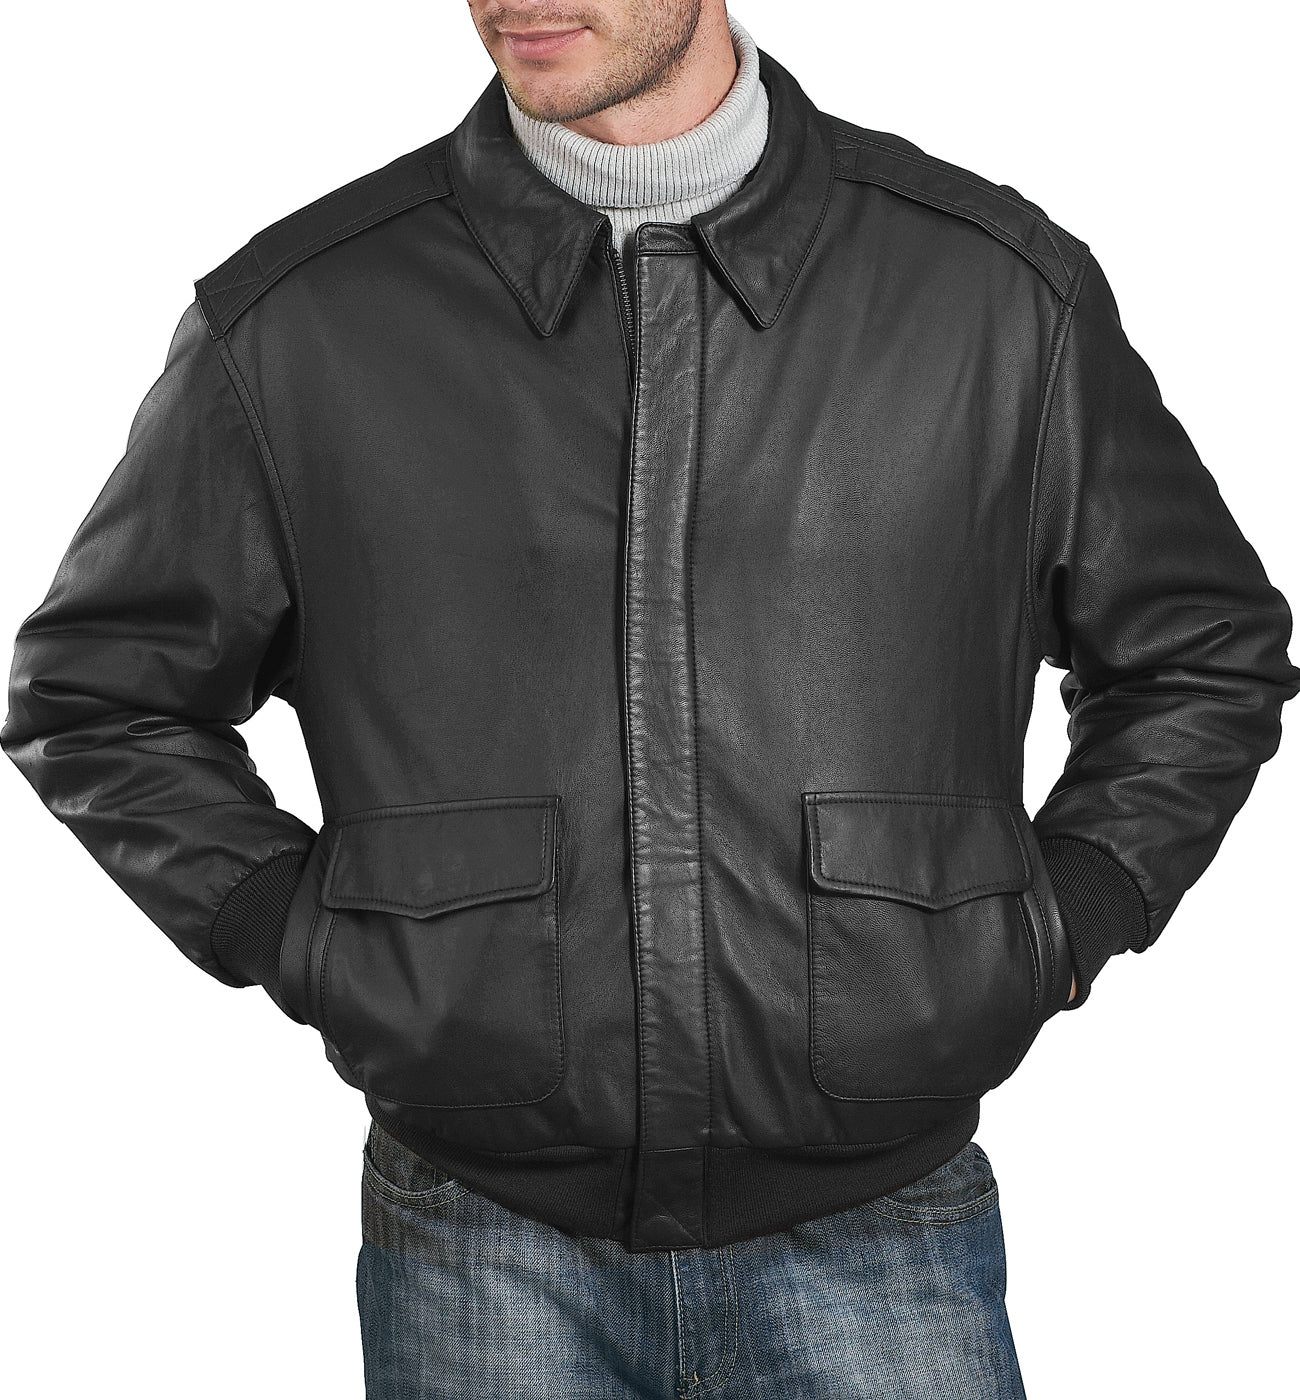 Landing Leathers Air Force Men's A2 Goatskin Leather Flight Bomber Jacket (A-2) - Big & Tall